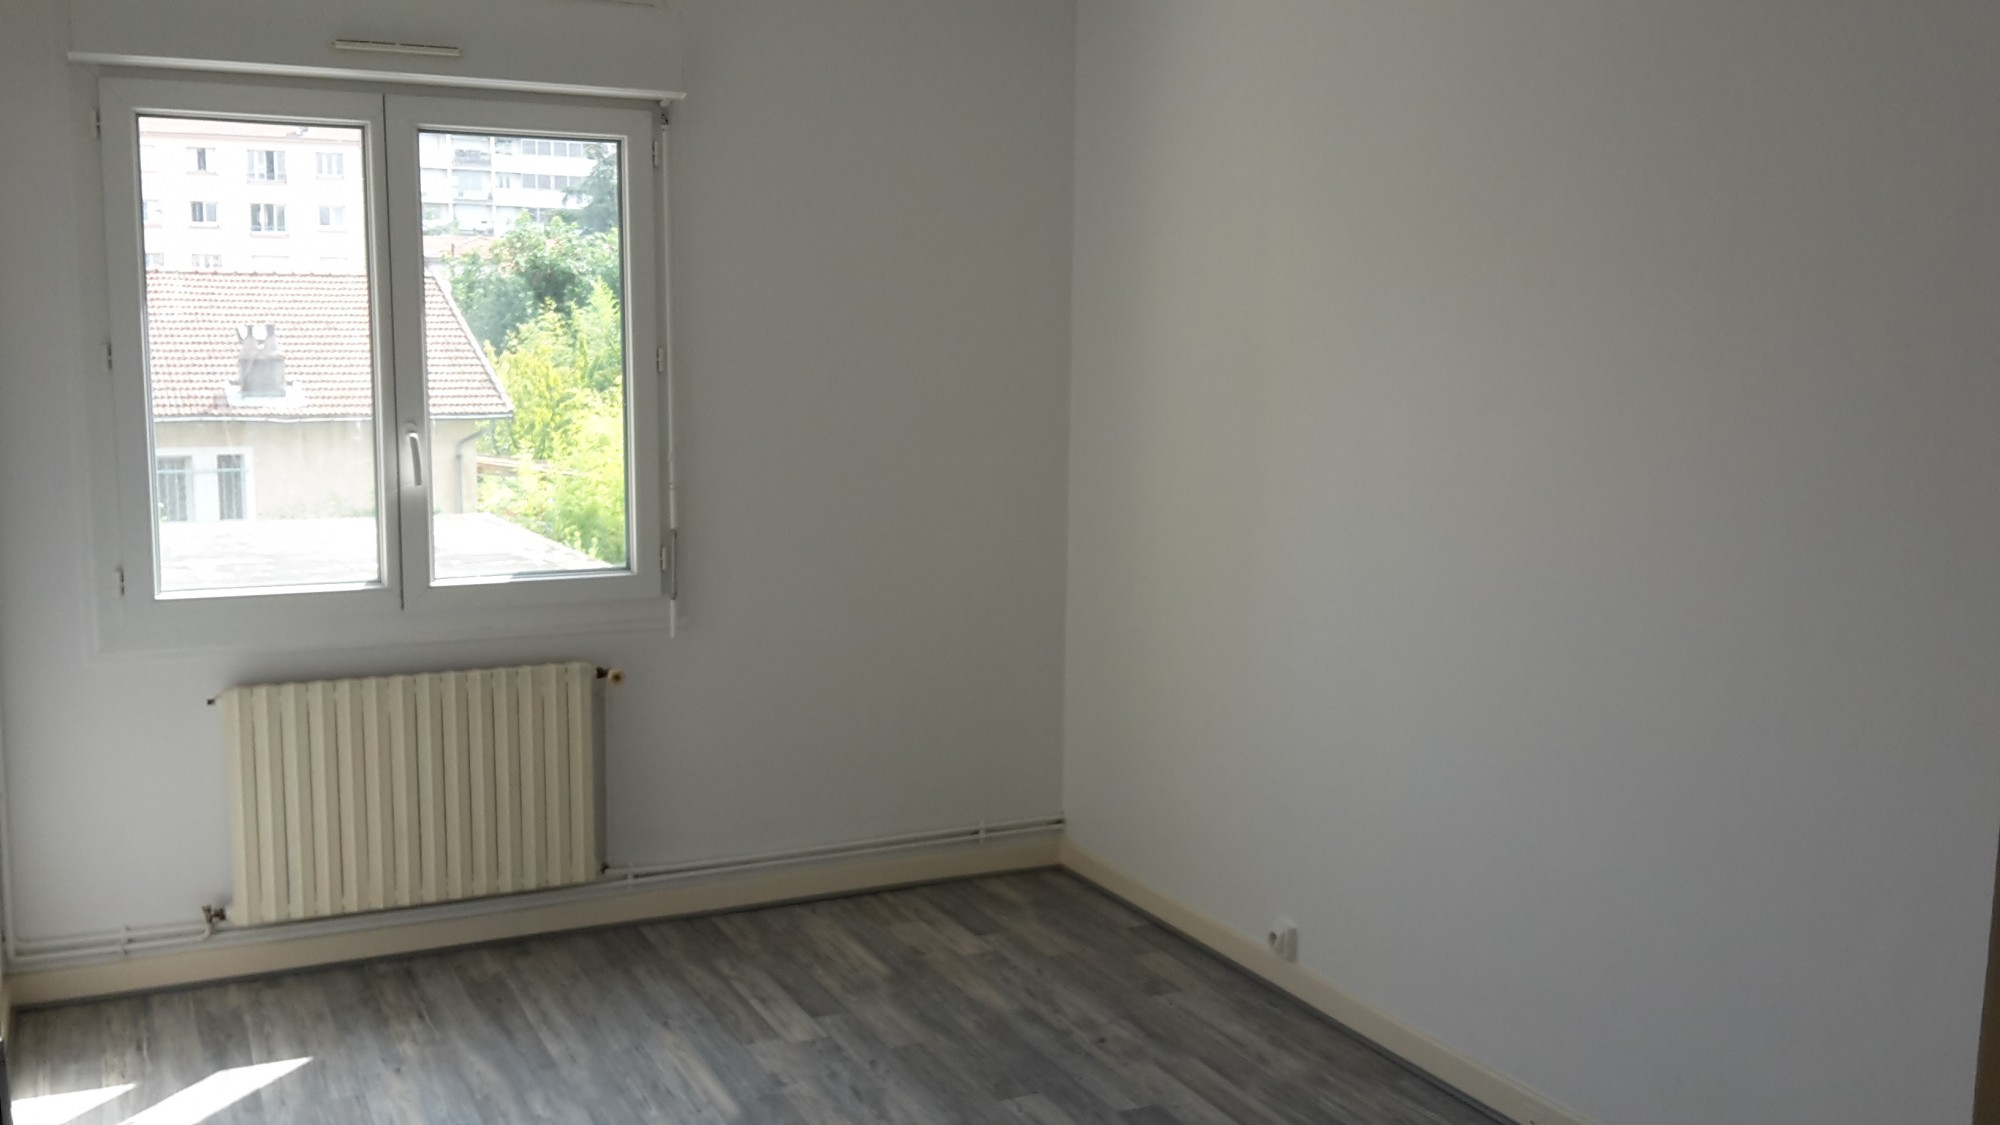 Location t4 avec 3 chambres quartier montplaisir location for Agence immobiliere valence